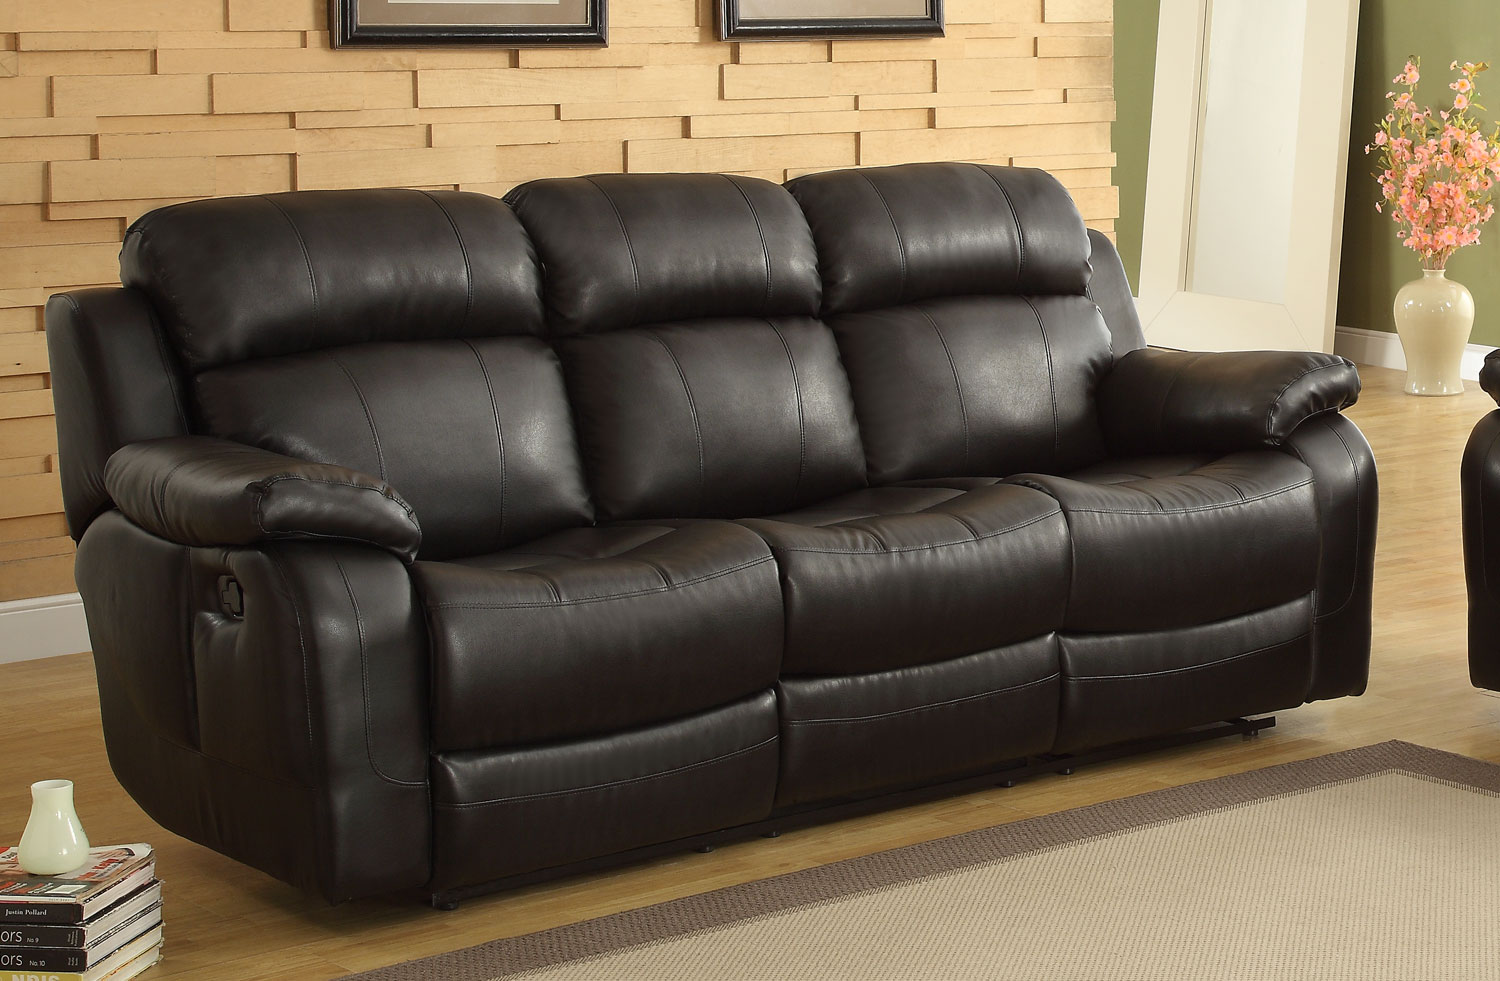 Sofa recliners with cup holders brown leather plush 3 recliners cup holders storage sectional Loveseat with cup holders